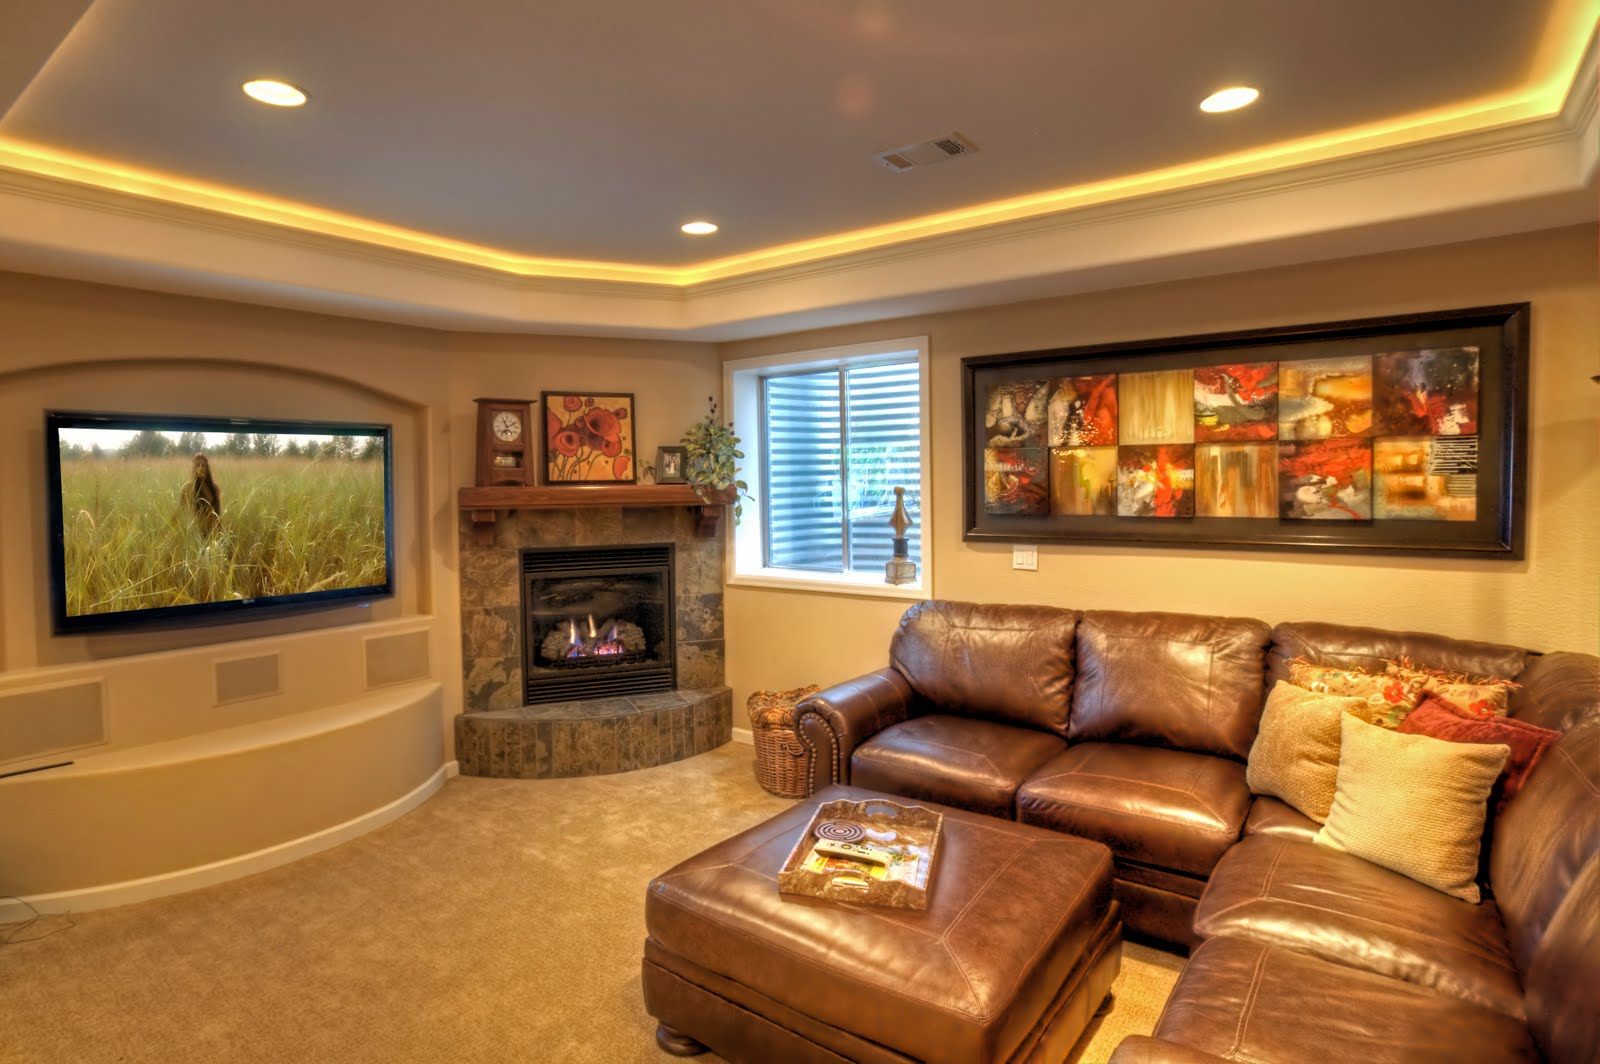 pictures-of-basement-ceiling-ideas